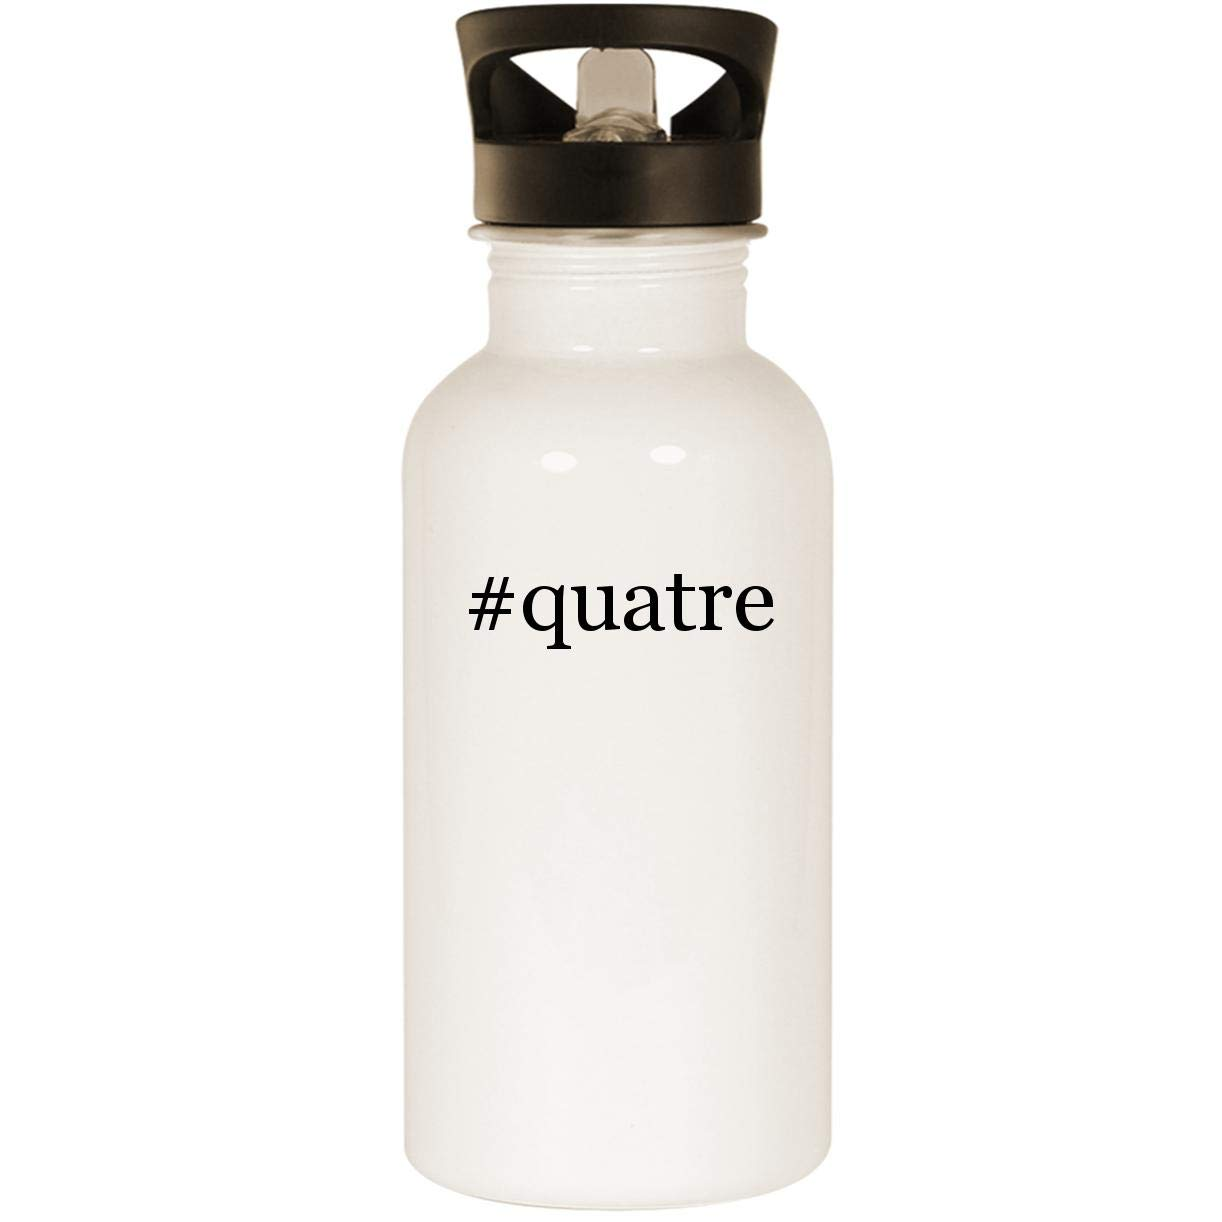 #quatre - Stainless Steel 20oz Road Ready Water Bottle, White